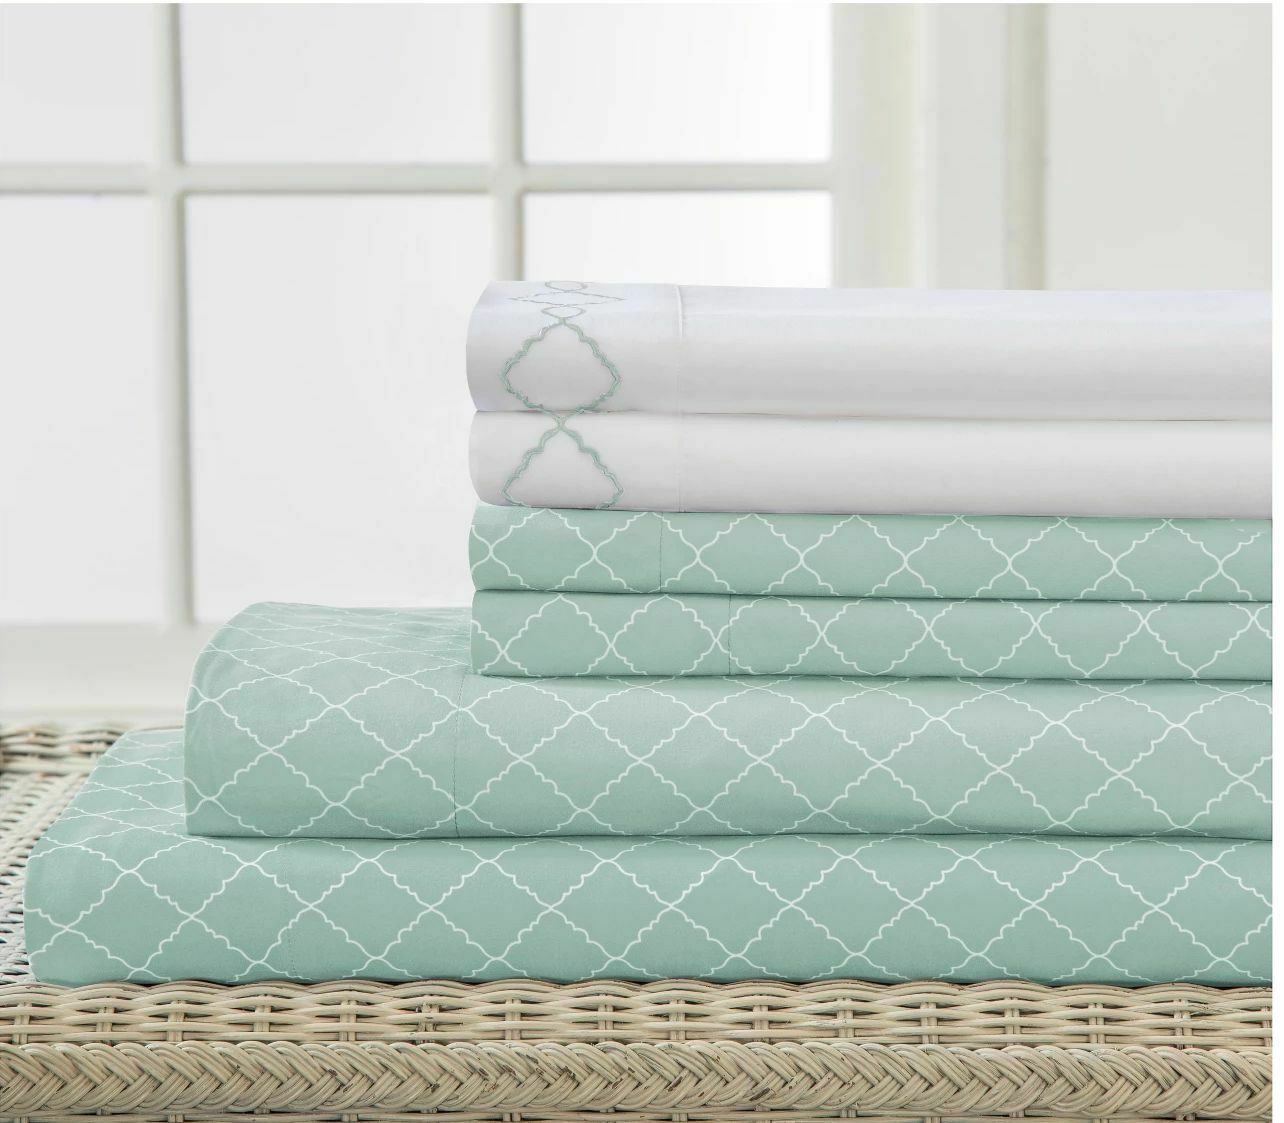 Queen Size Bed Sheet Sets Microfiber Embroider Green White Diamond Print 4 Piece